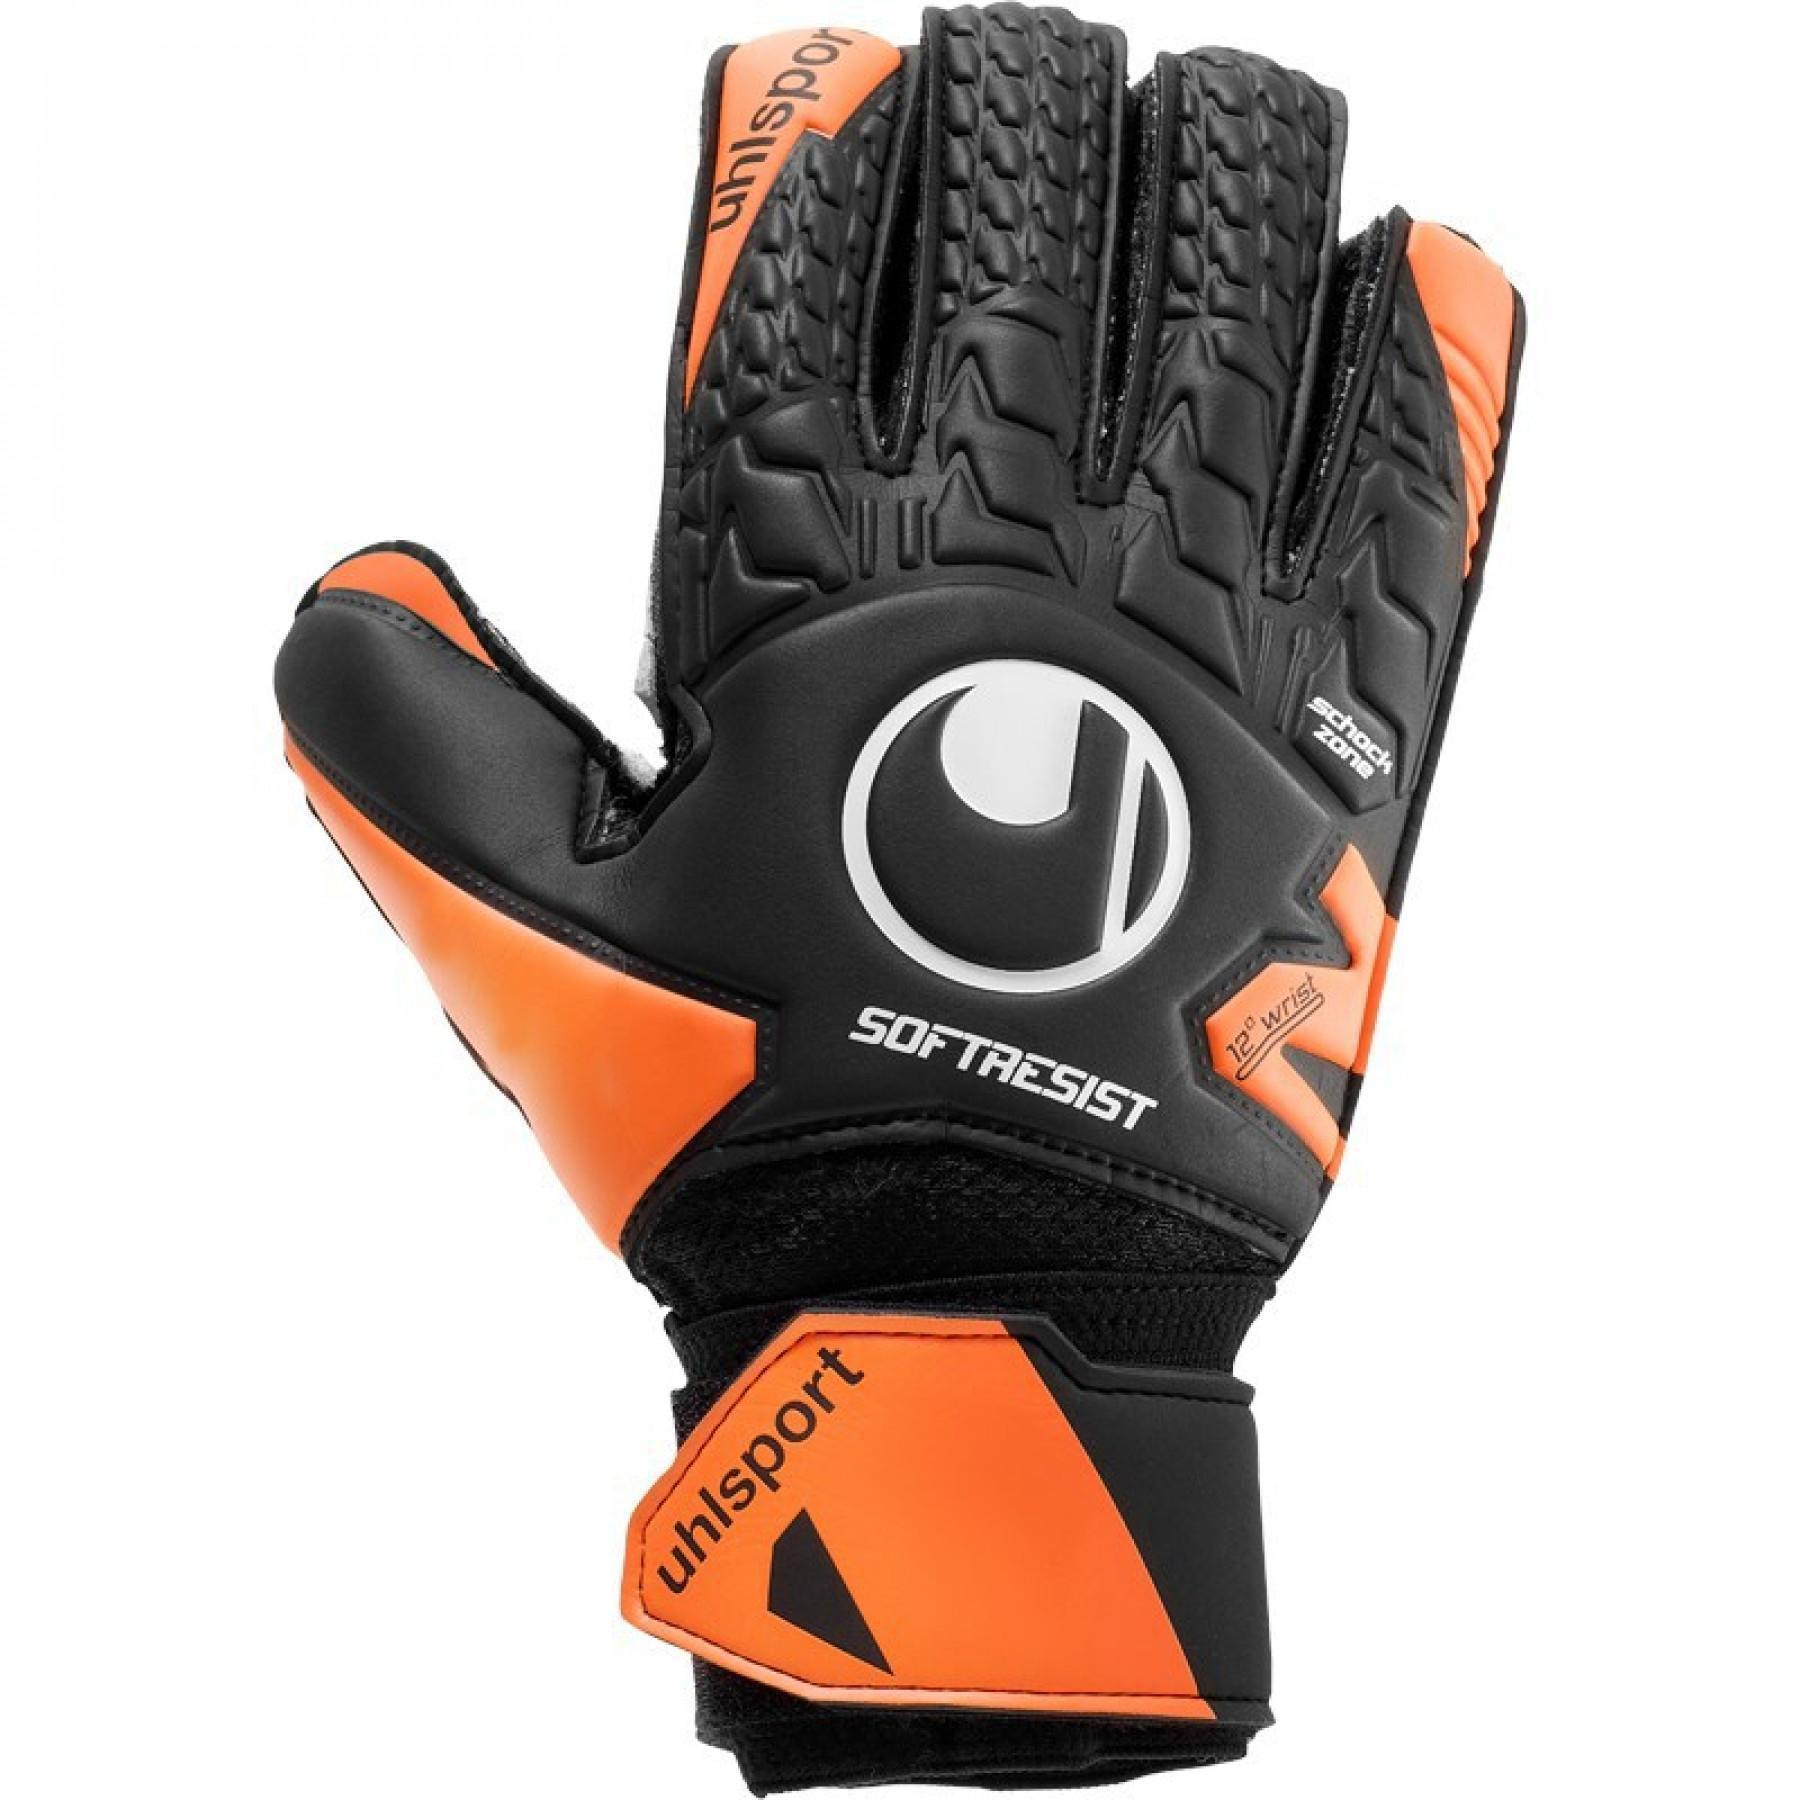 Uhlsport Soft Resist Flex Frame Goalie-Handschuhe